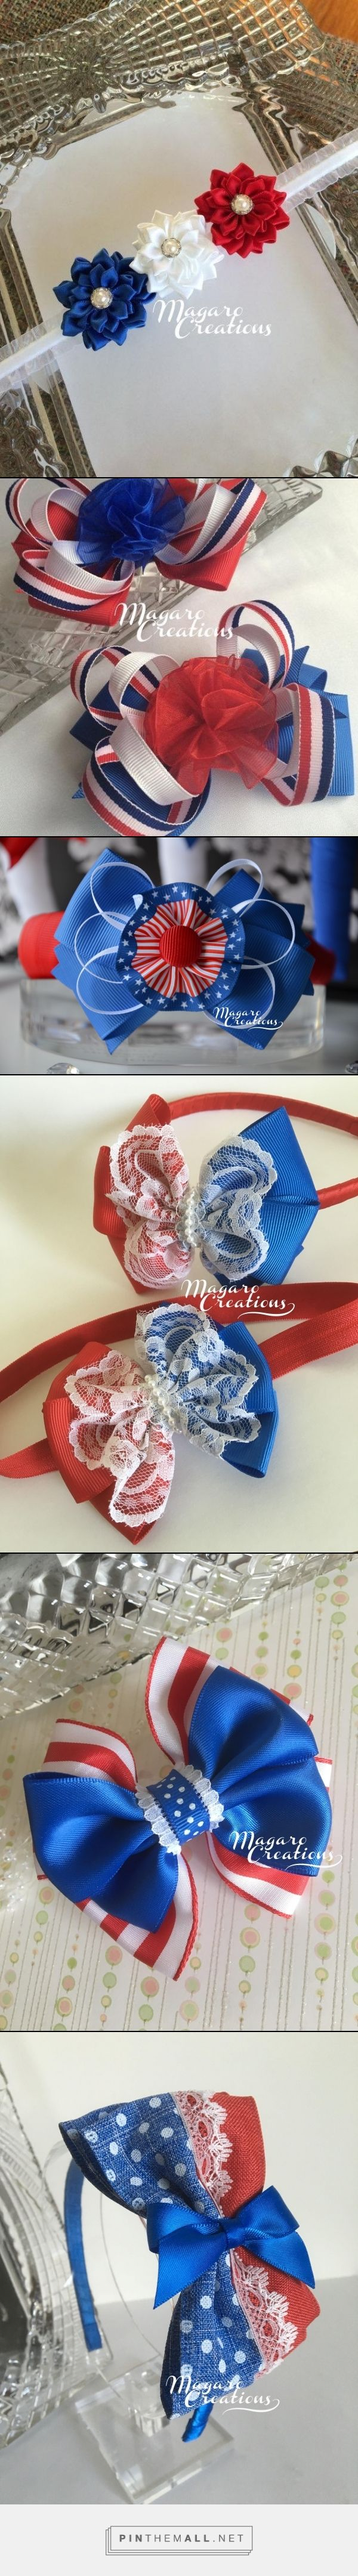 Patriotic hair accessories,4th of July headband,patriotic hair bows,holiday headband,girl headband,toddler headband,bow headband,bow tie headband,infant headband,baby headband. What a cute way to celebrate the Independence Day!!!!! - created via https://pinthemall.net